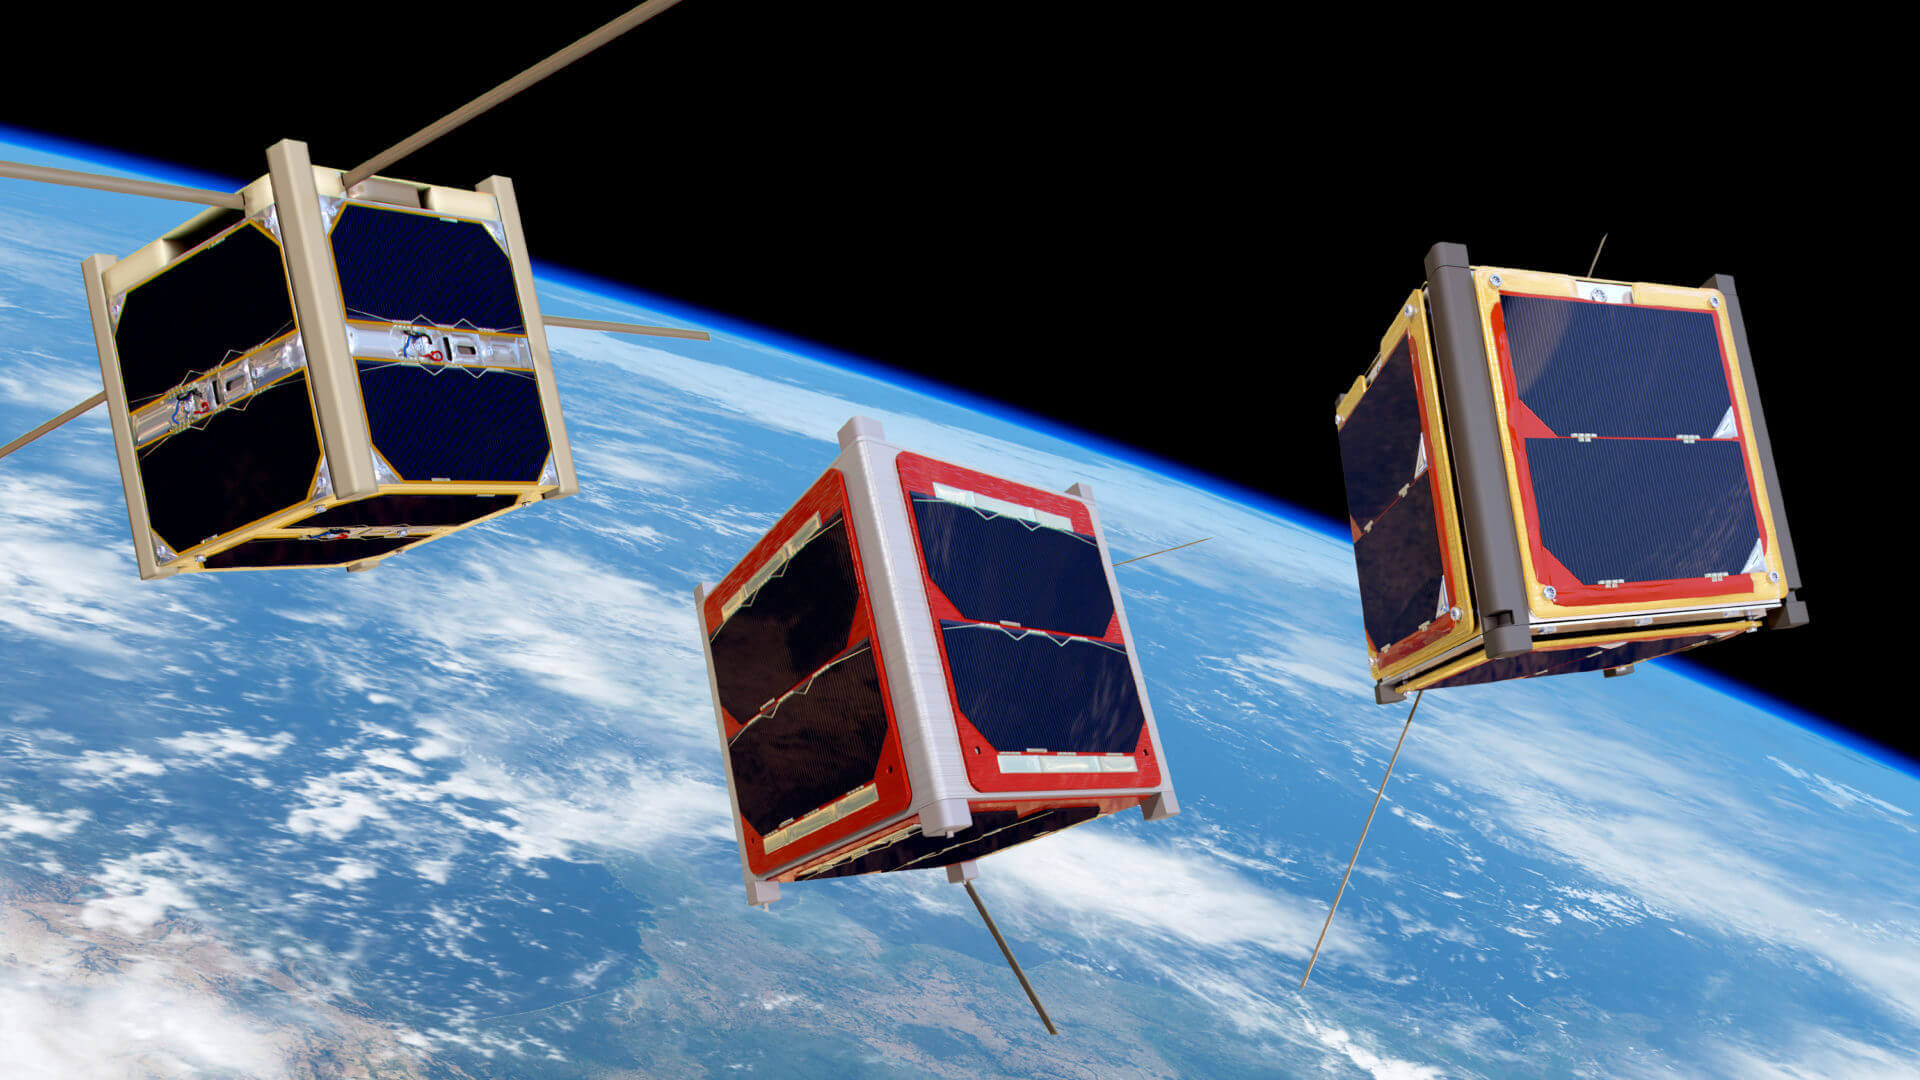 ESA is 3D Printing CubeSat for Faster and Cheaper Missions | All3DP